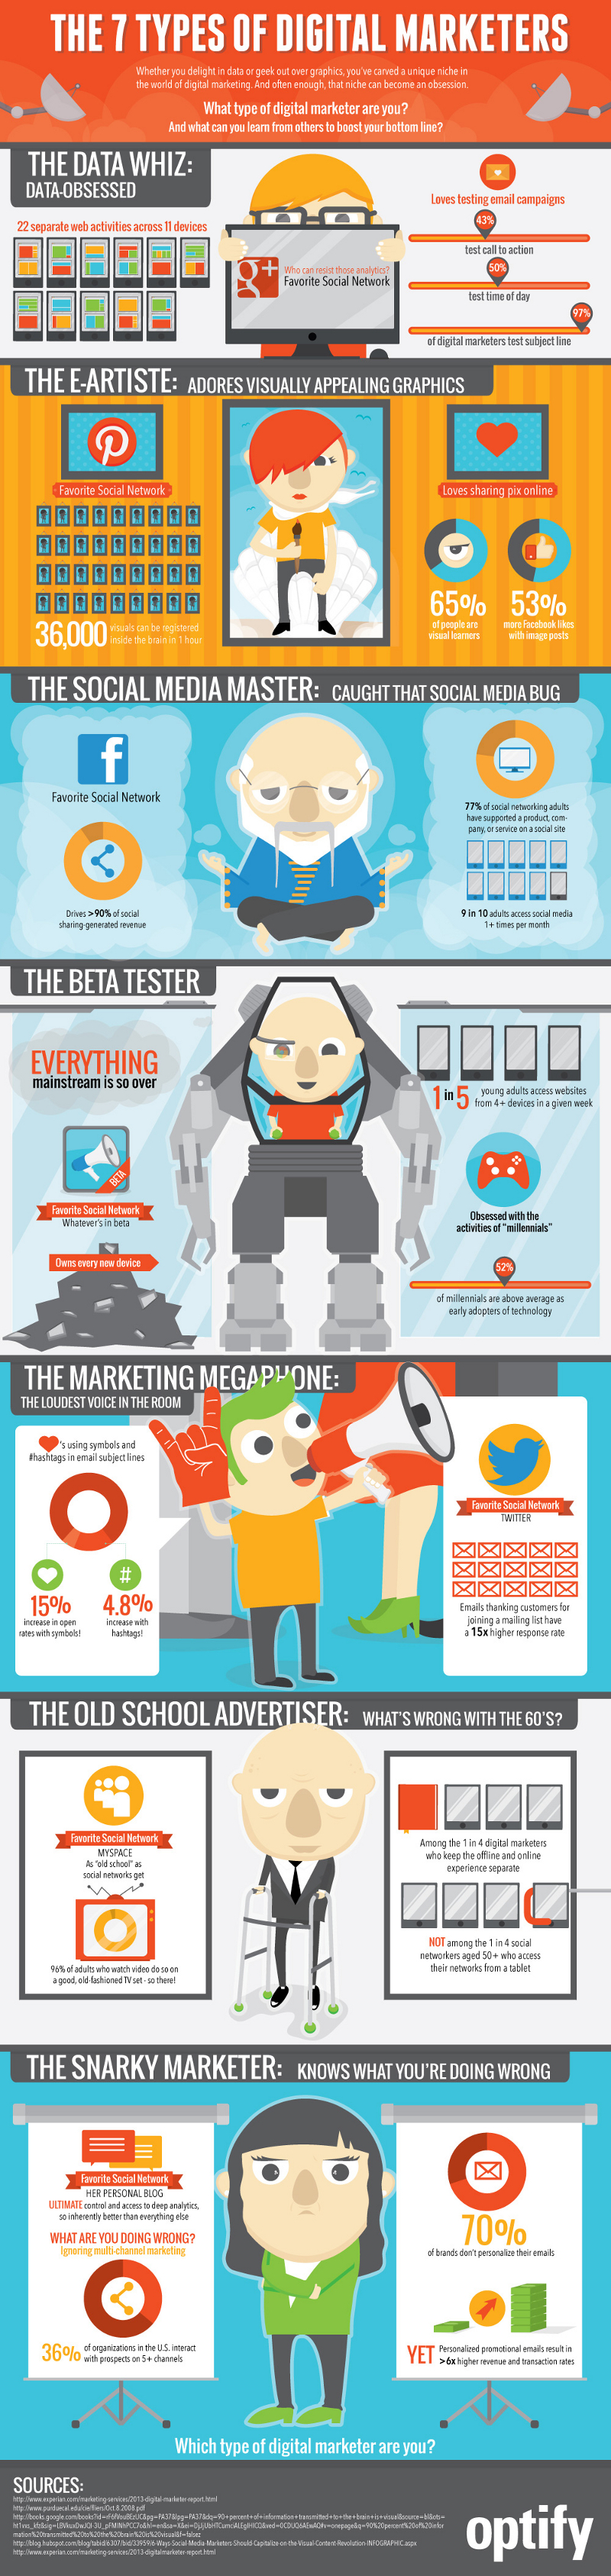 Types of Digital Marketers